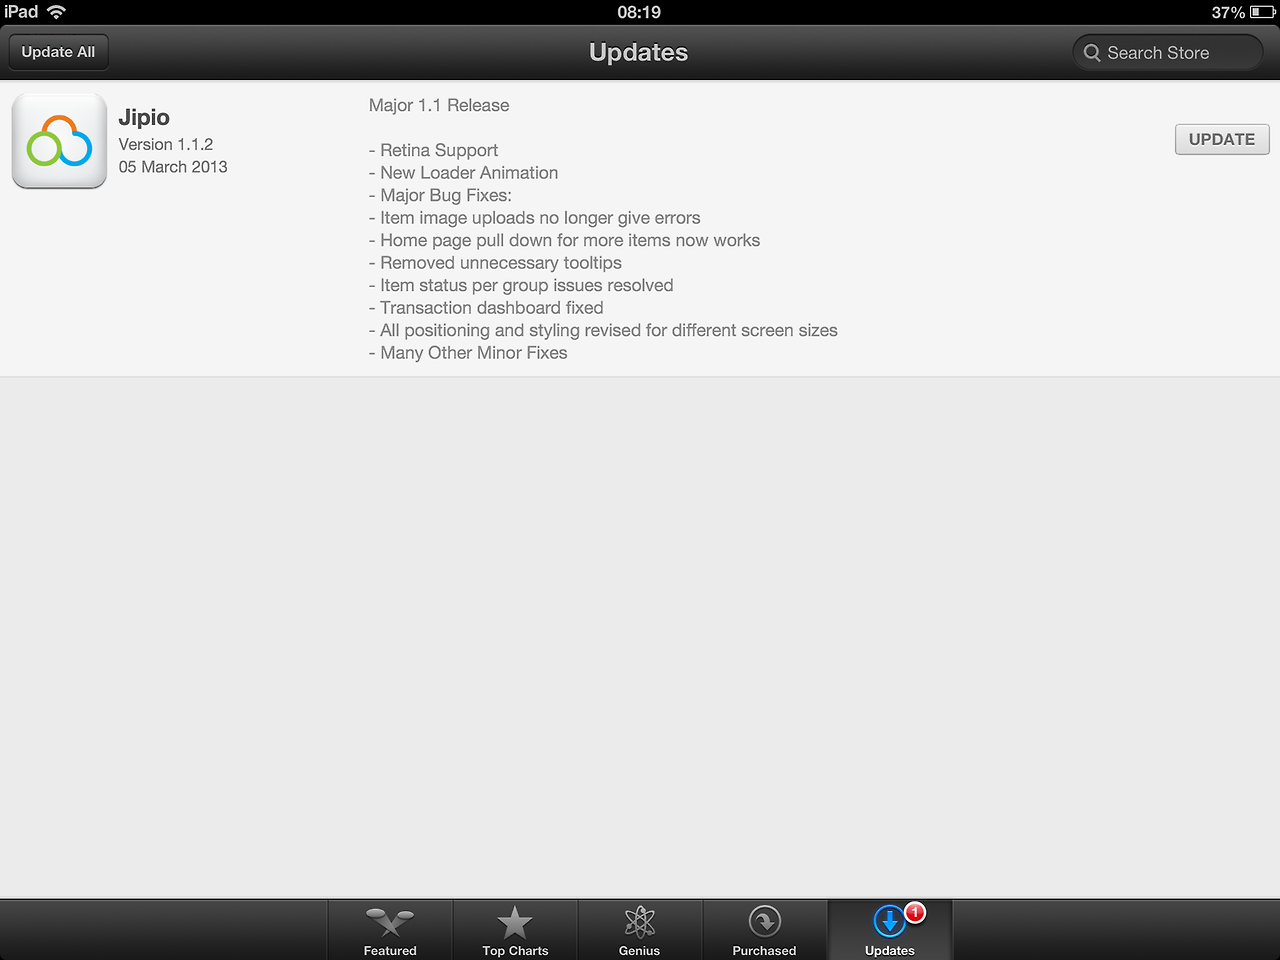 Version 1.1.2 is available in the appstore.